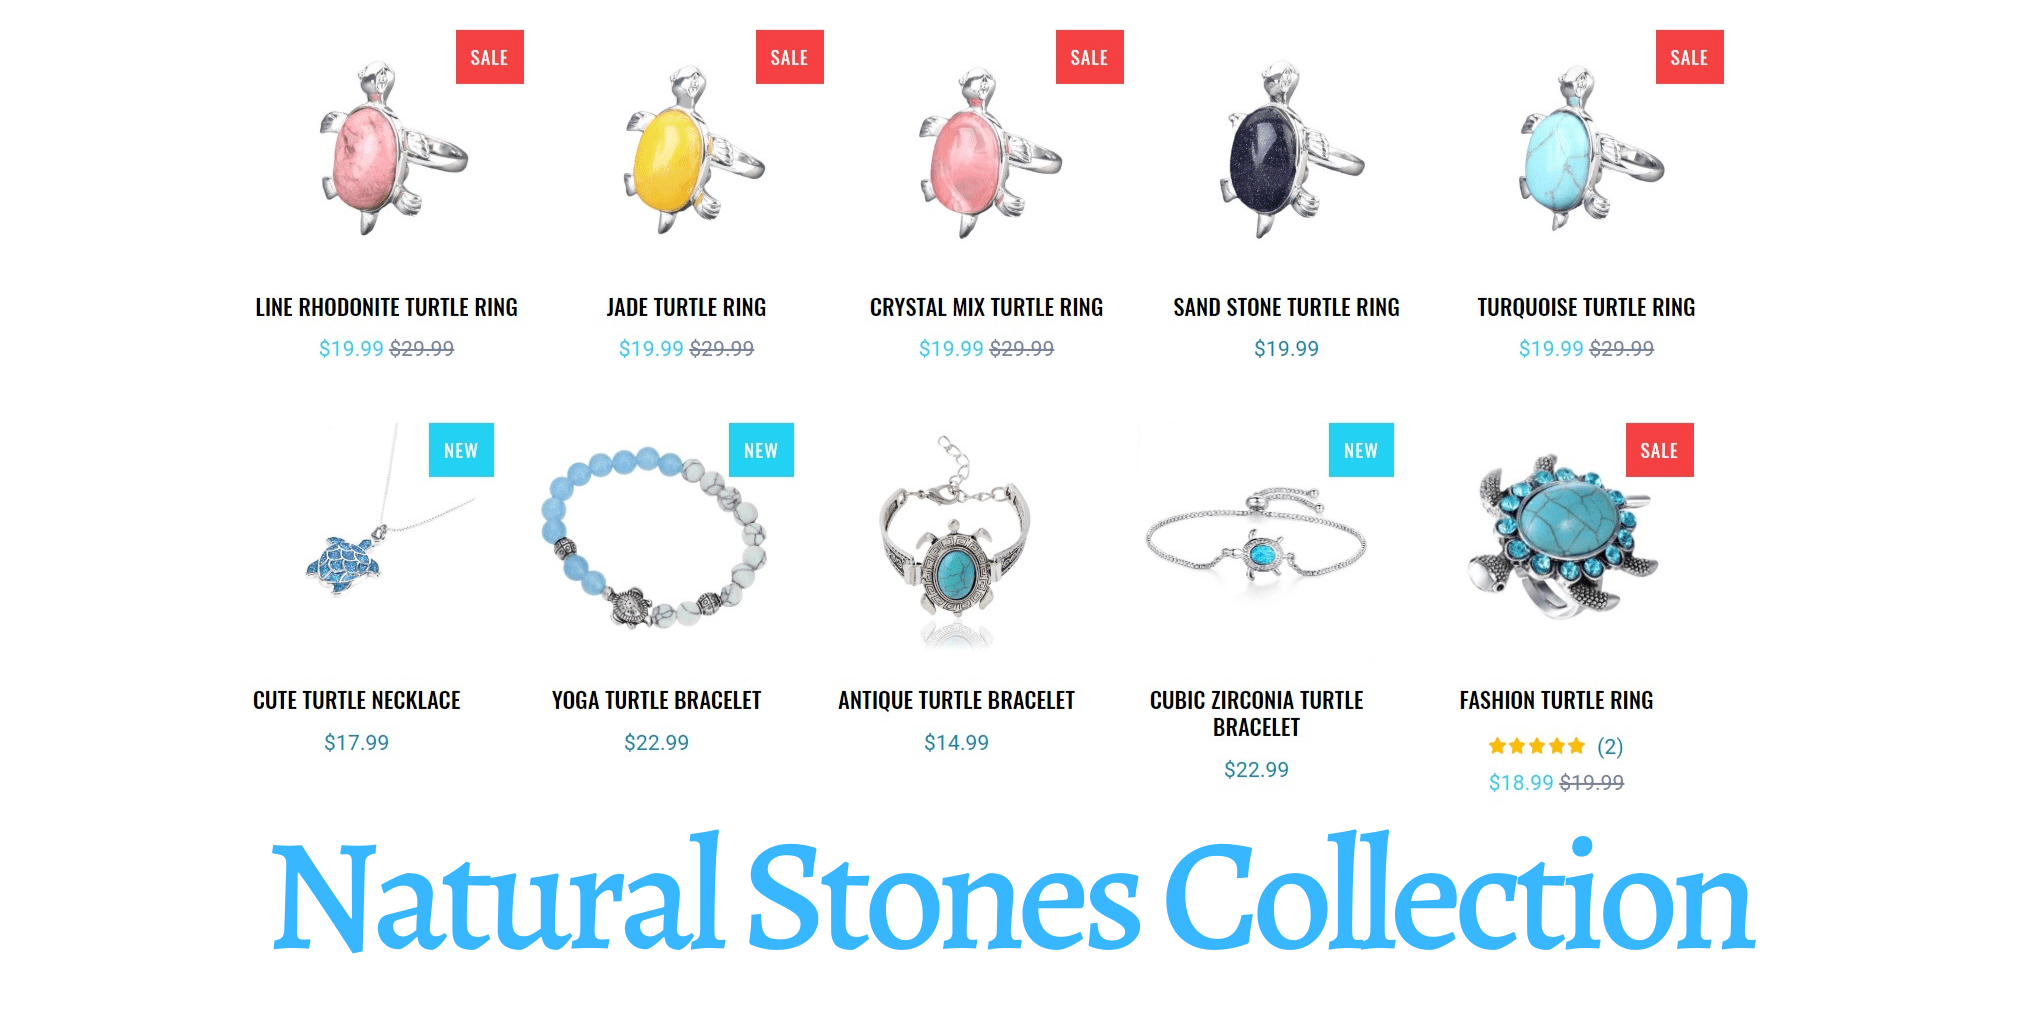 Natural Stones Collection - Turtle Store